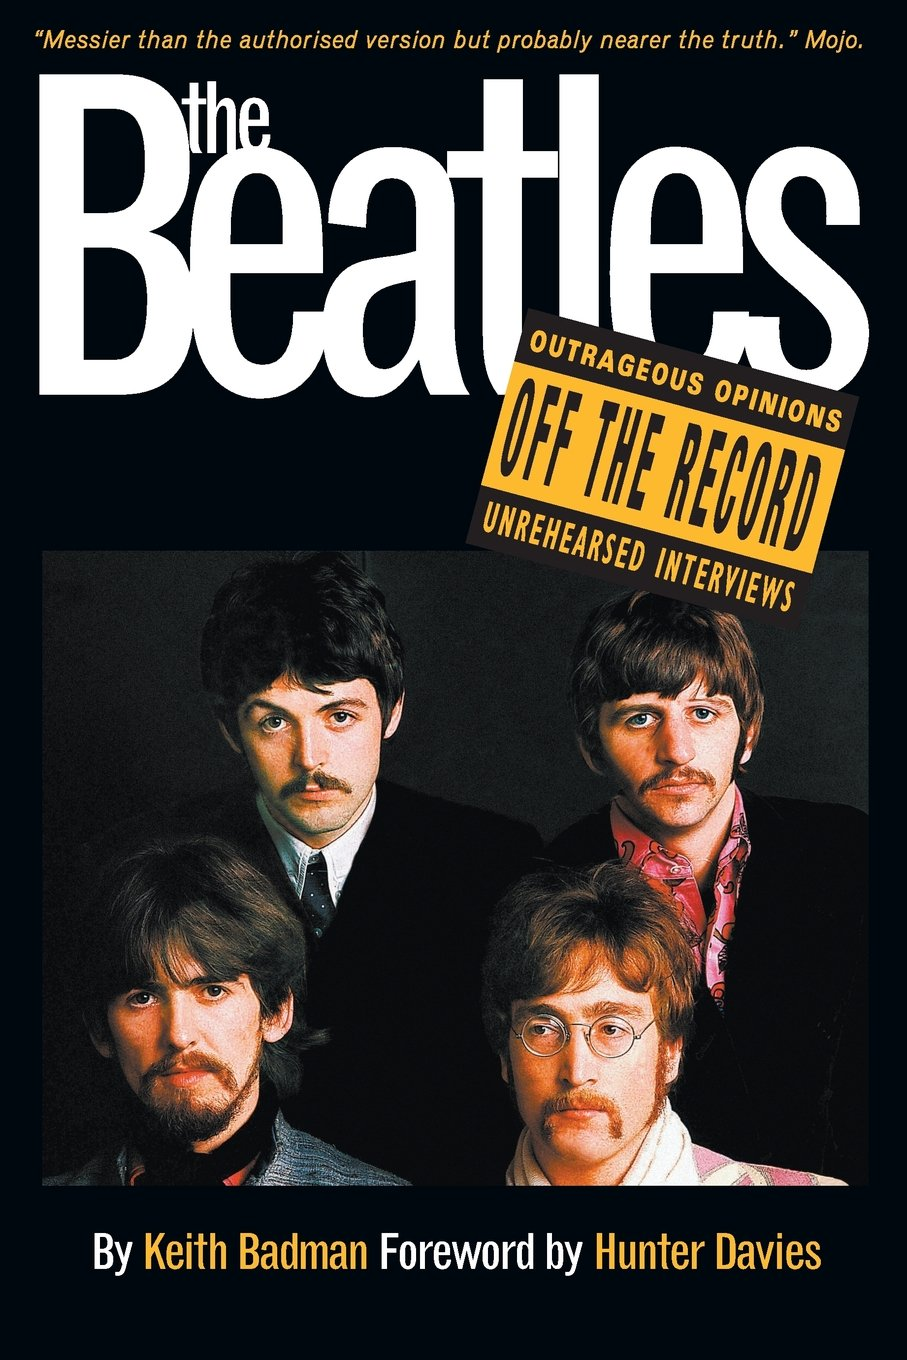 Beatles Off The Record